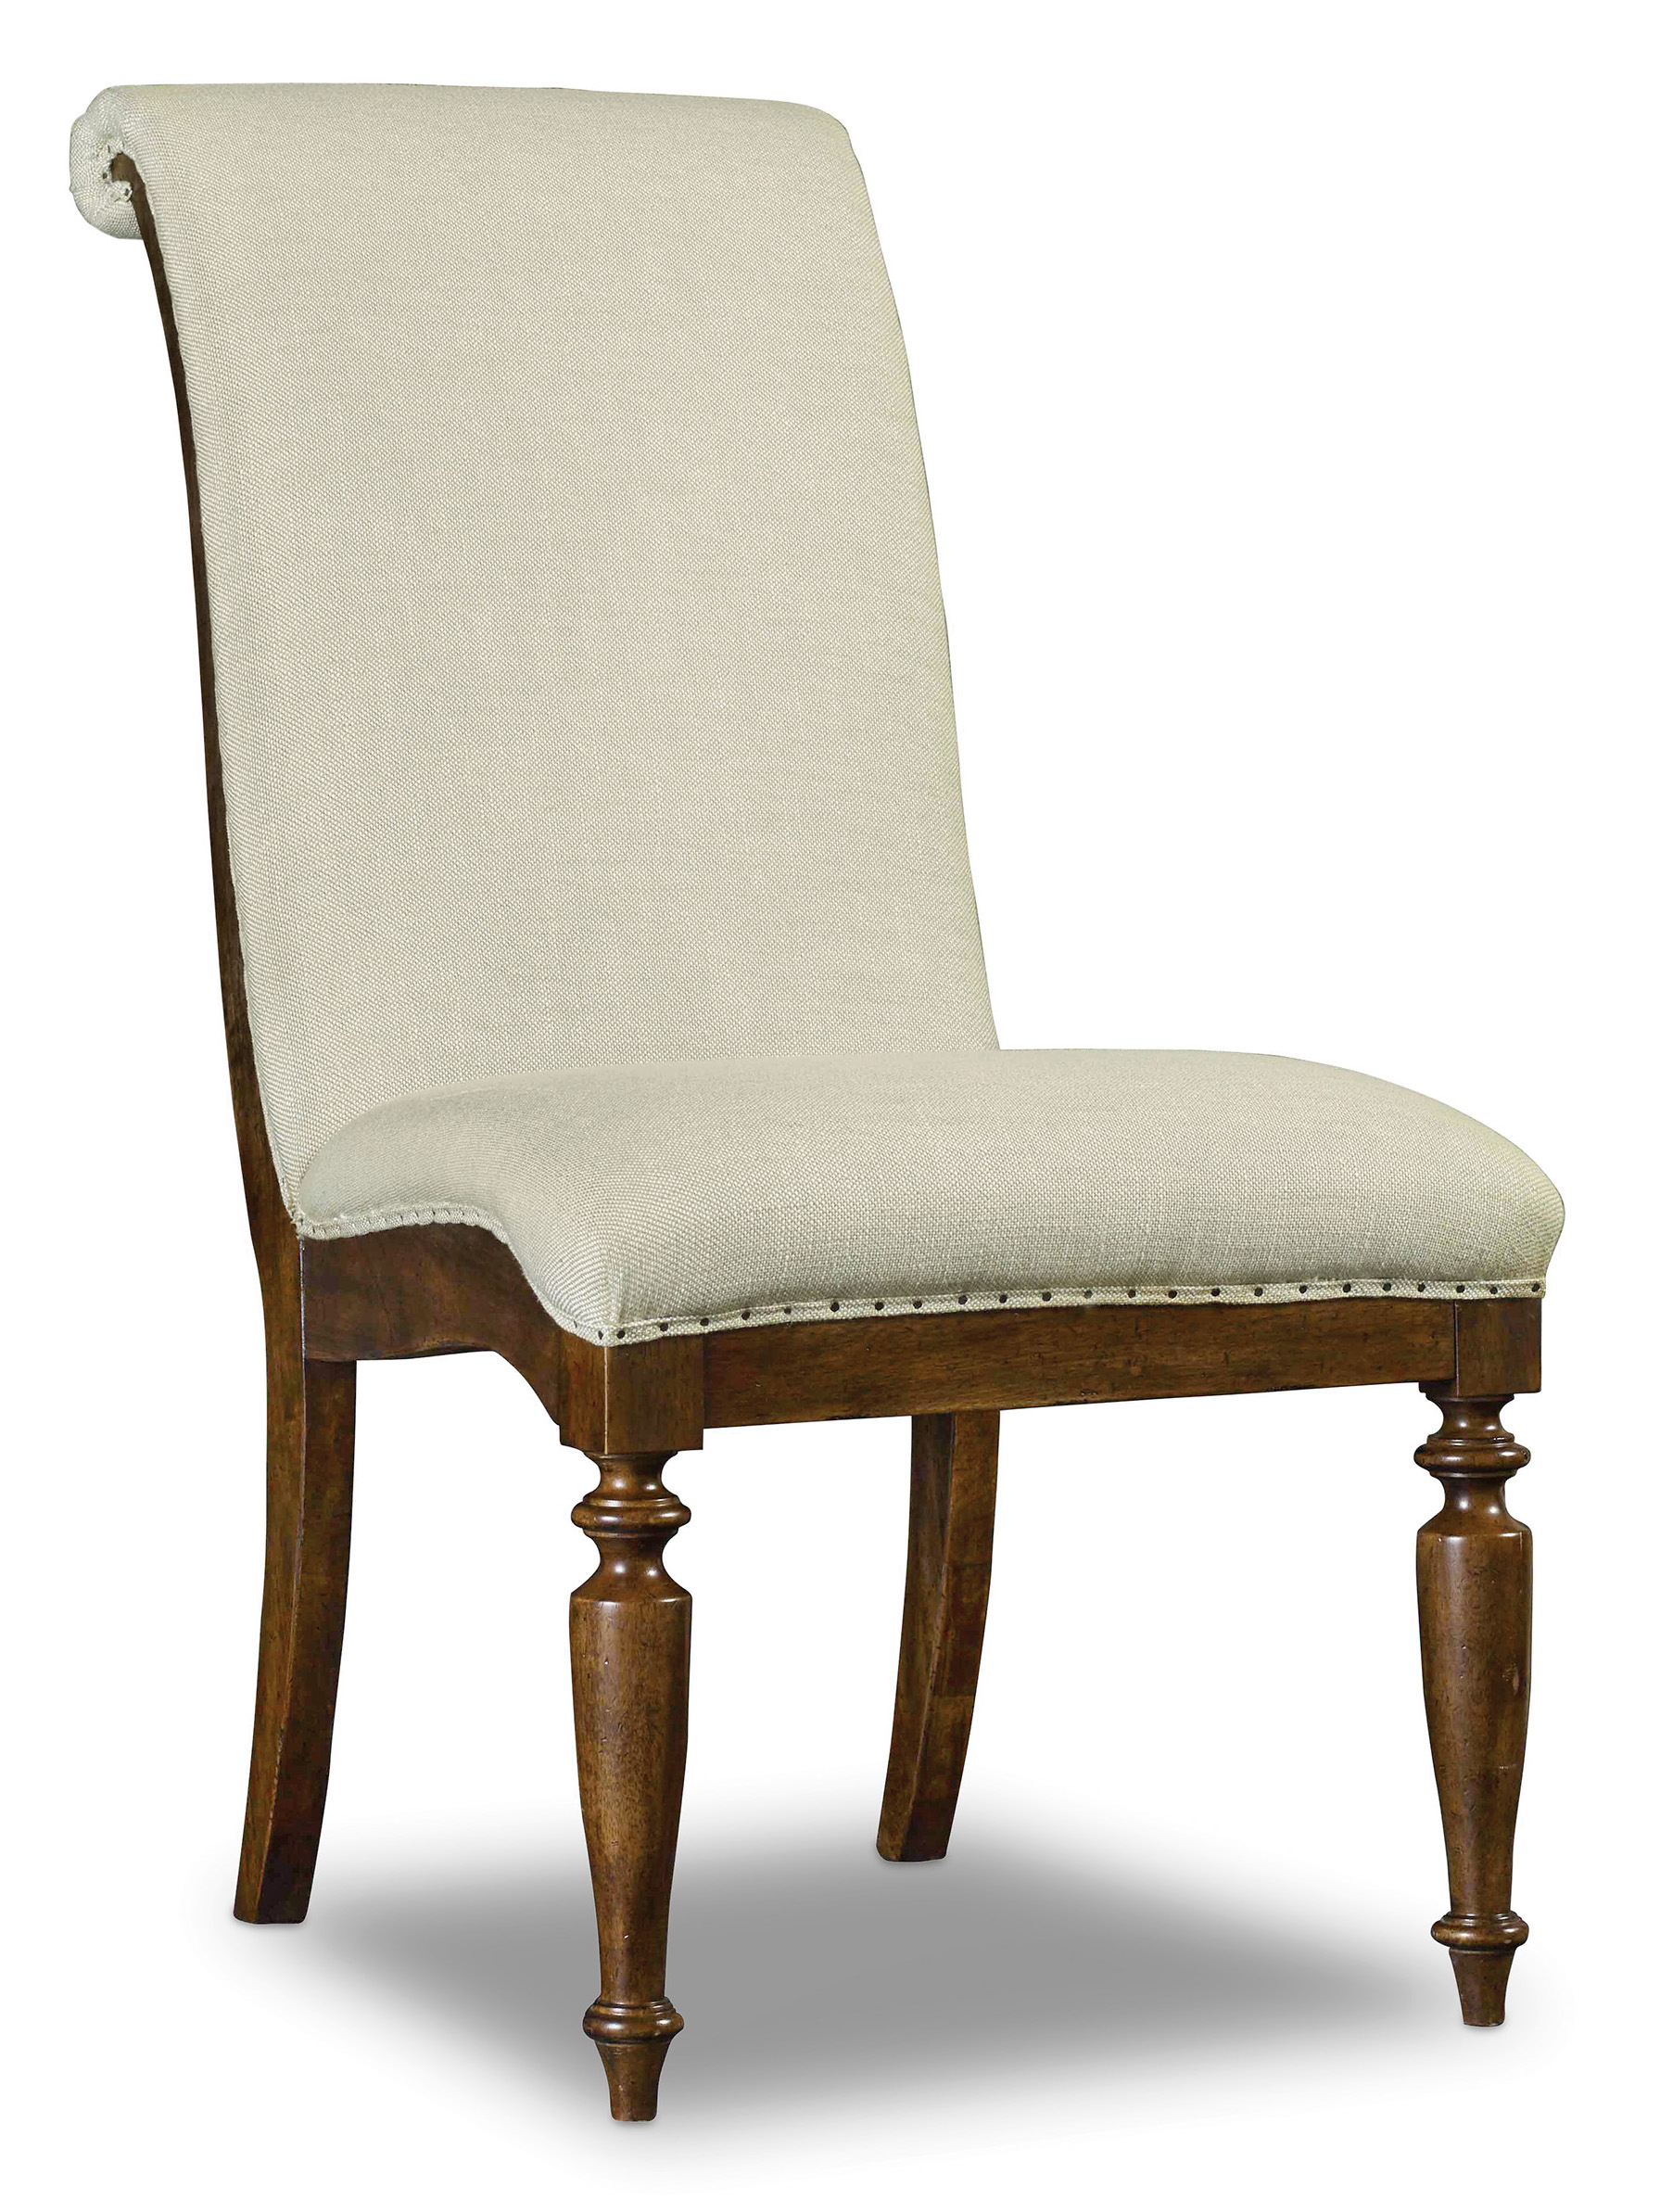 Archivist Upholstered Side Chair - 2 per carton/price ea